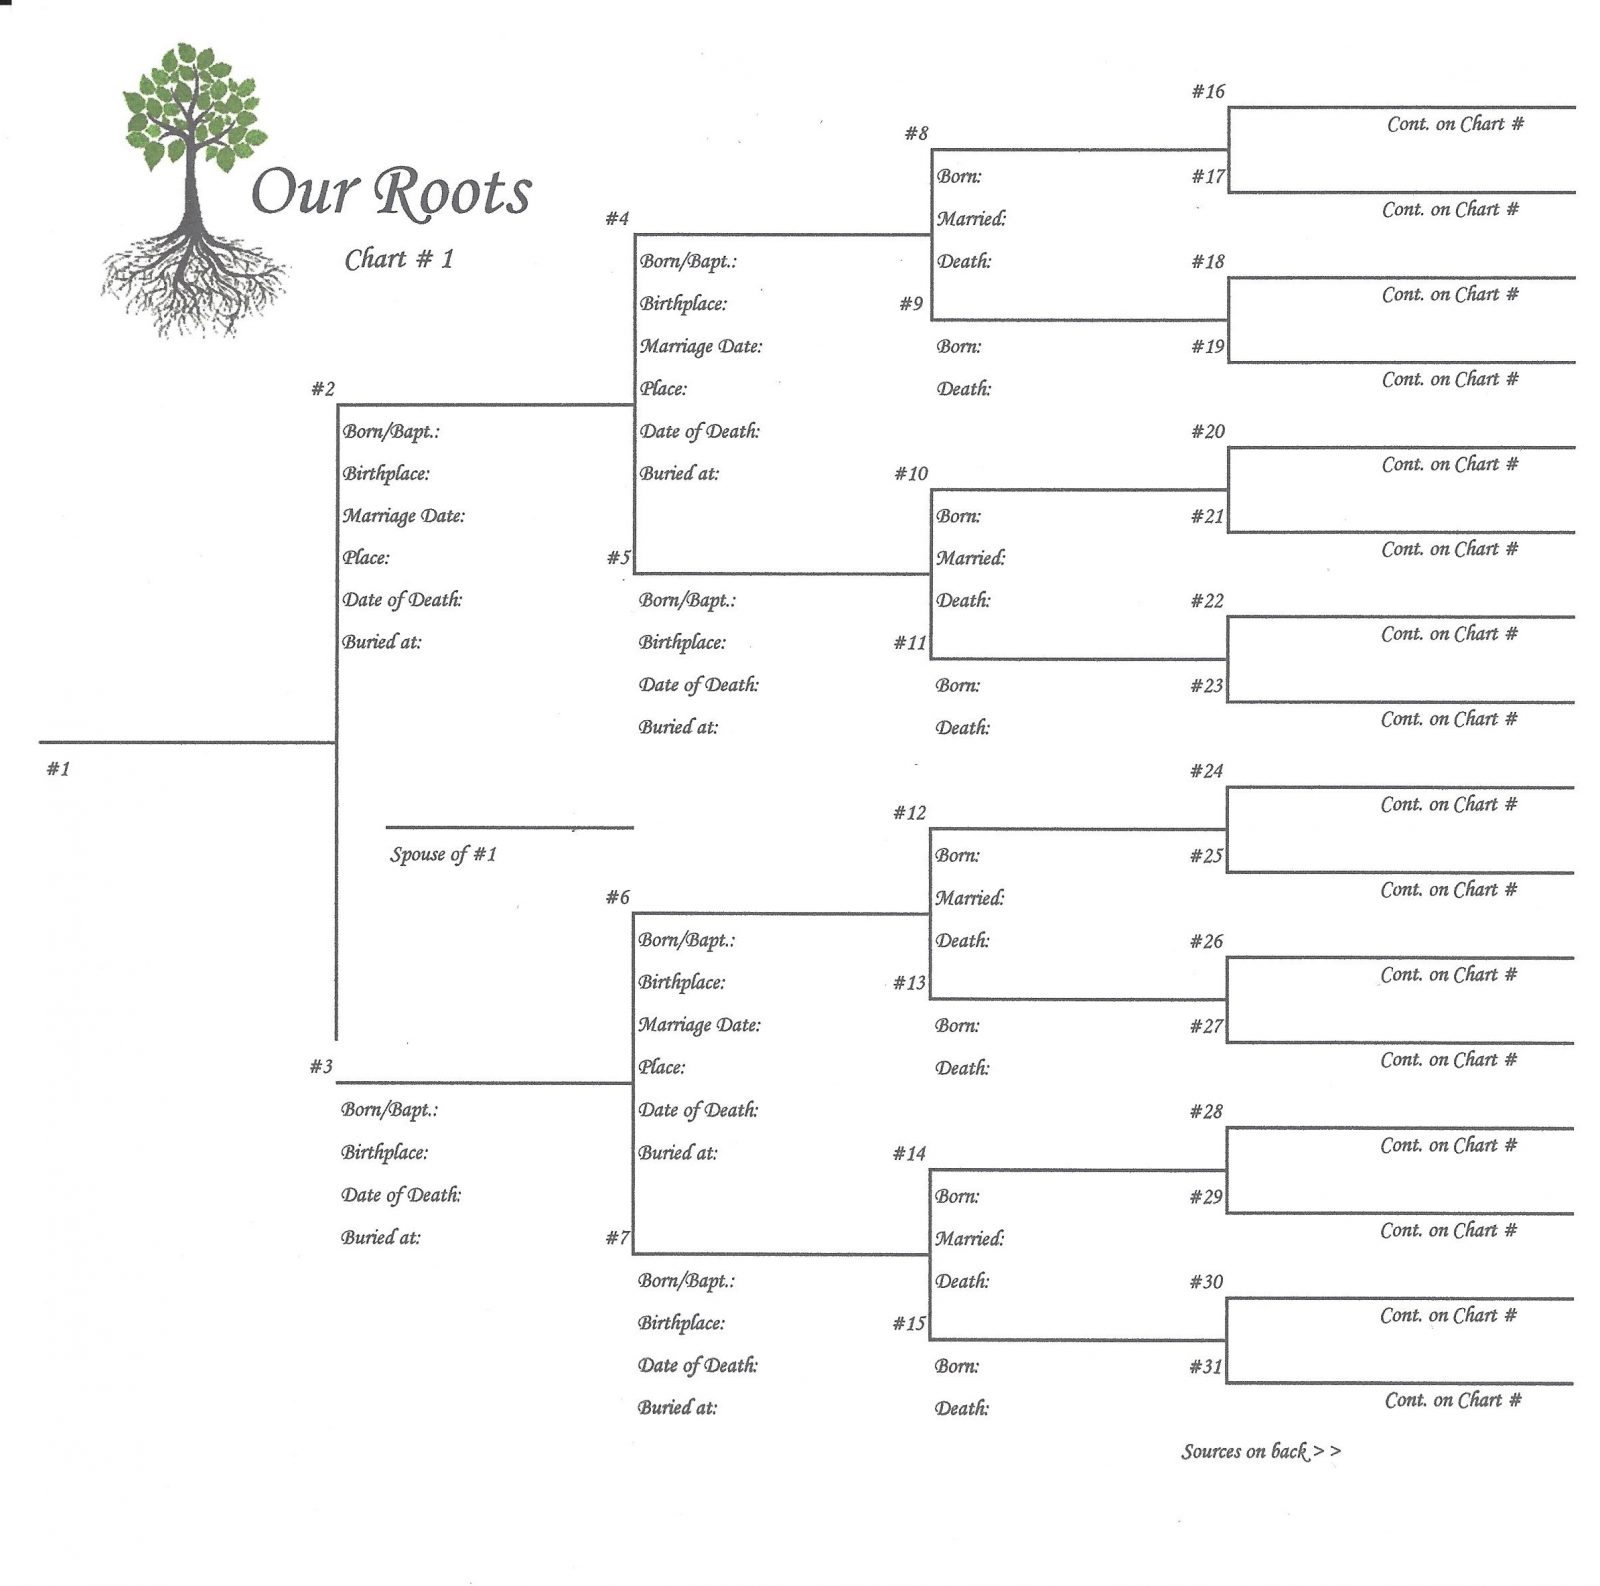 Our Roots 8 X 8 Pedigree Chart 1